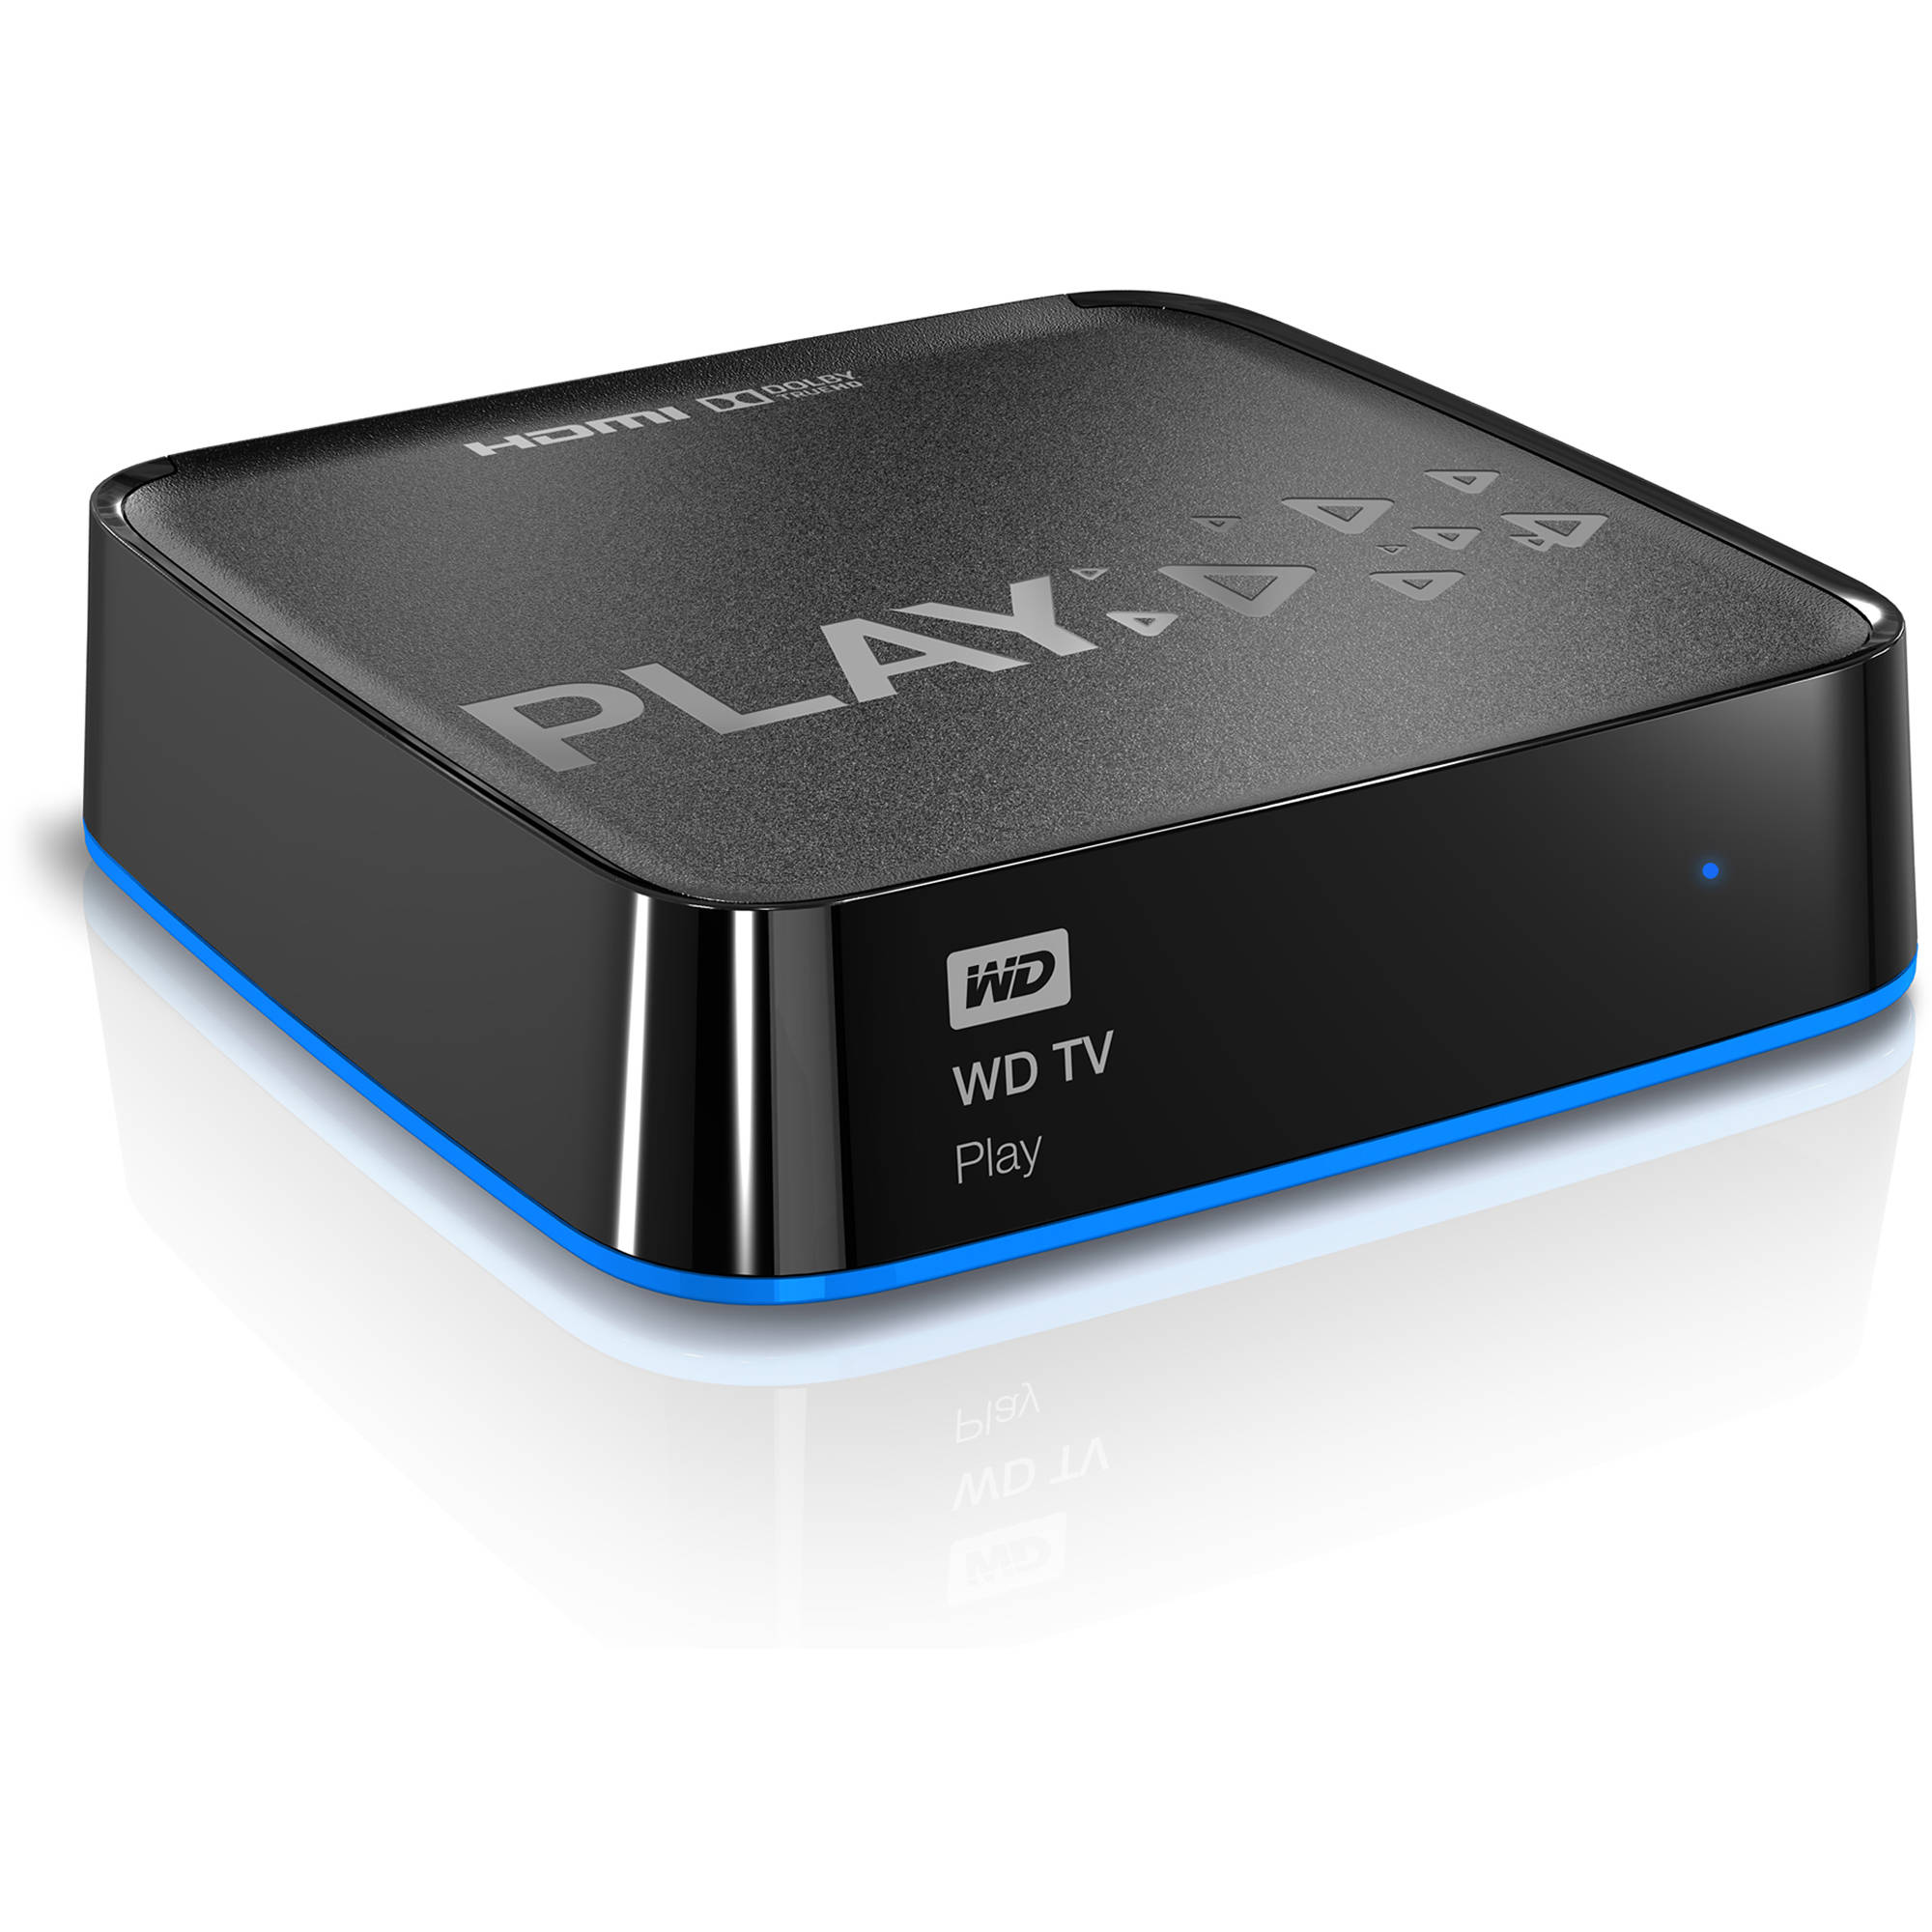 WD WD TV Play Media Player WDBMBA0000NBK-HESN B&H Photo Video